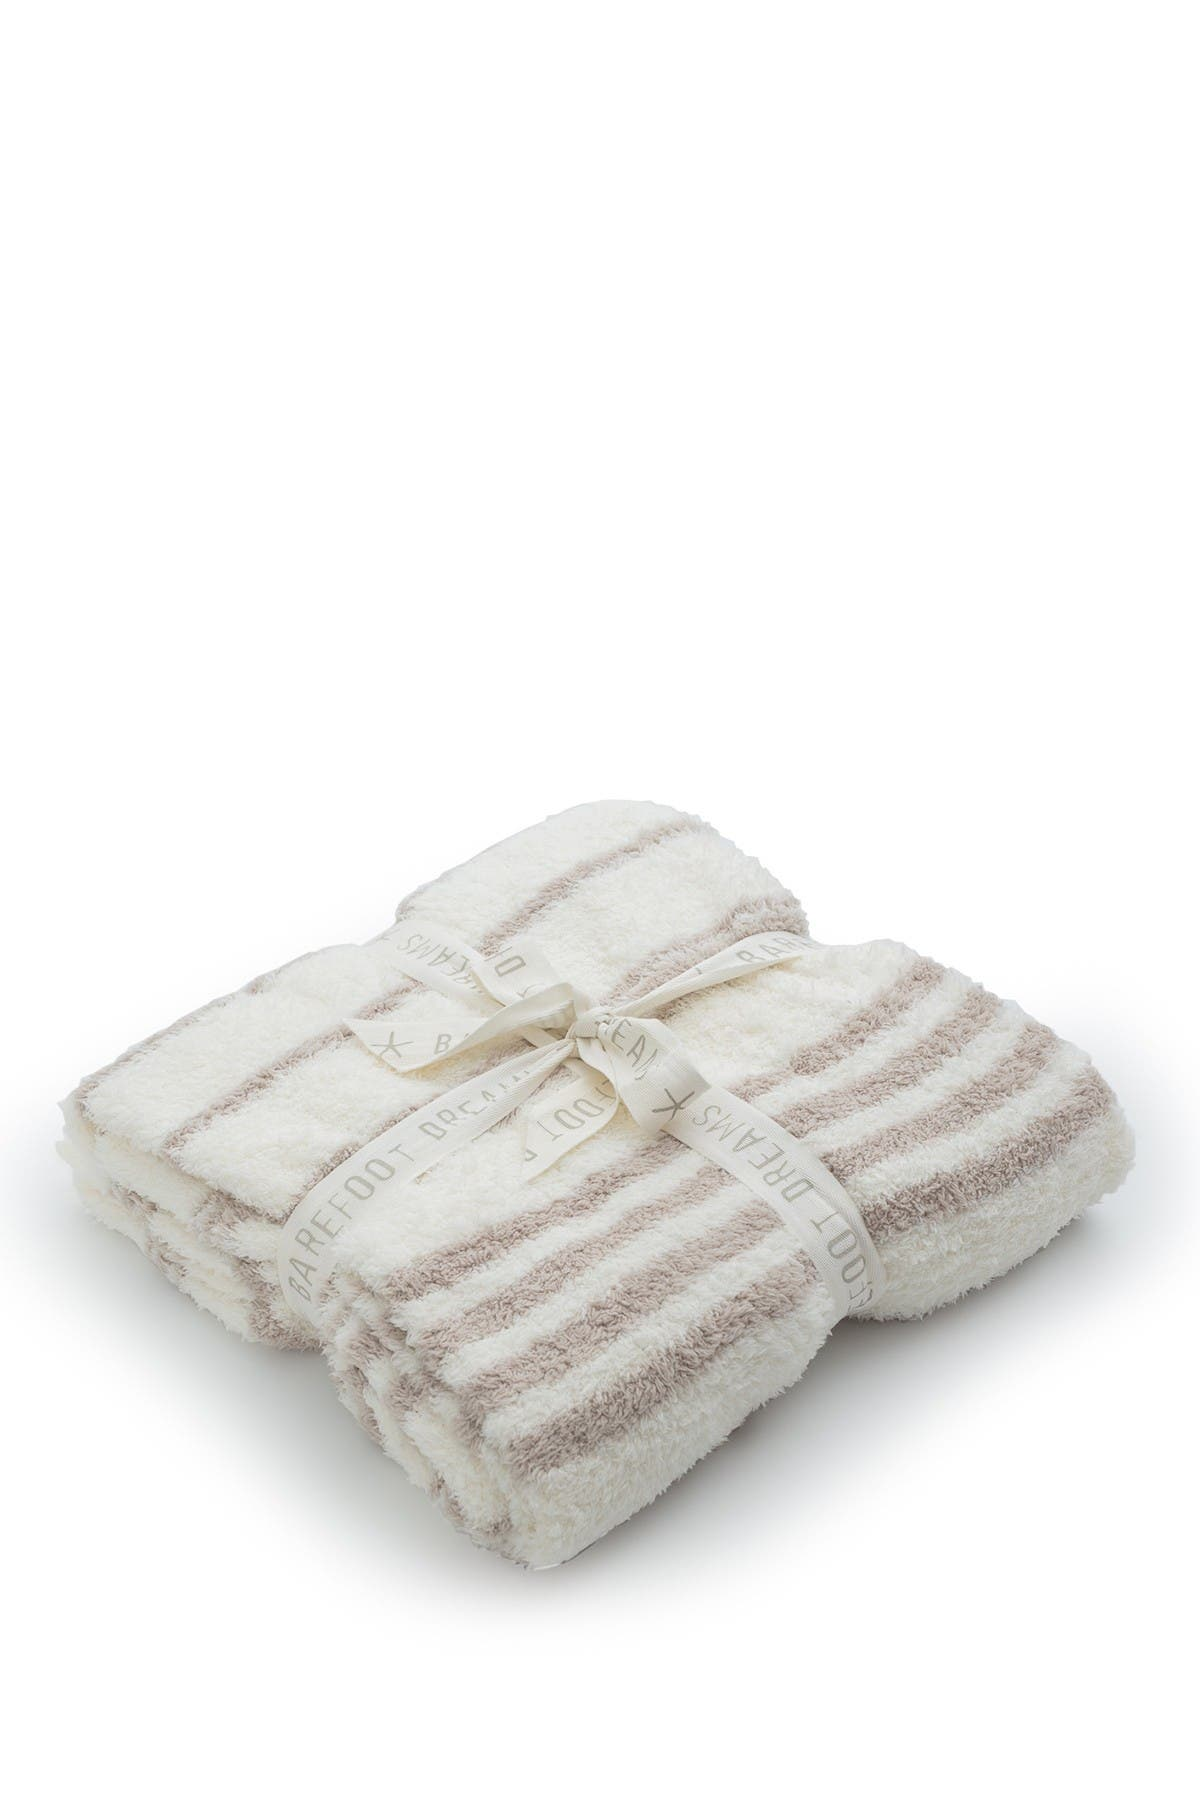 "Image of Barefoot Dreams Cozy Chic Striped Throw - 45"" x 60"""